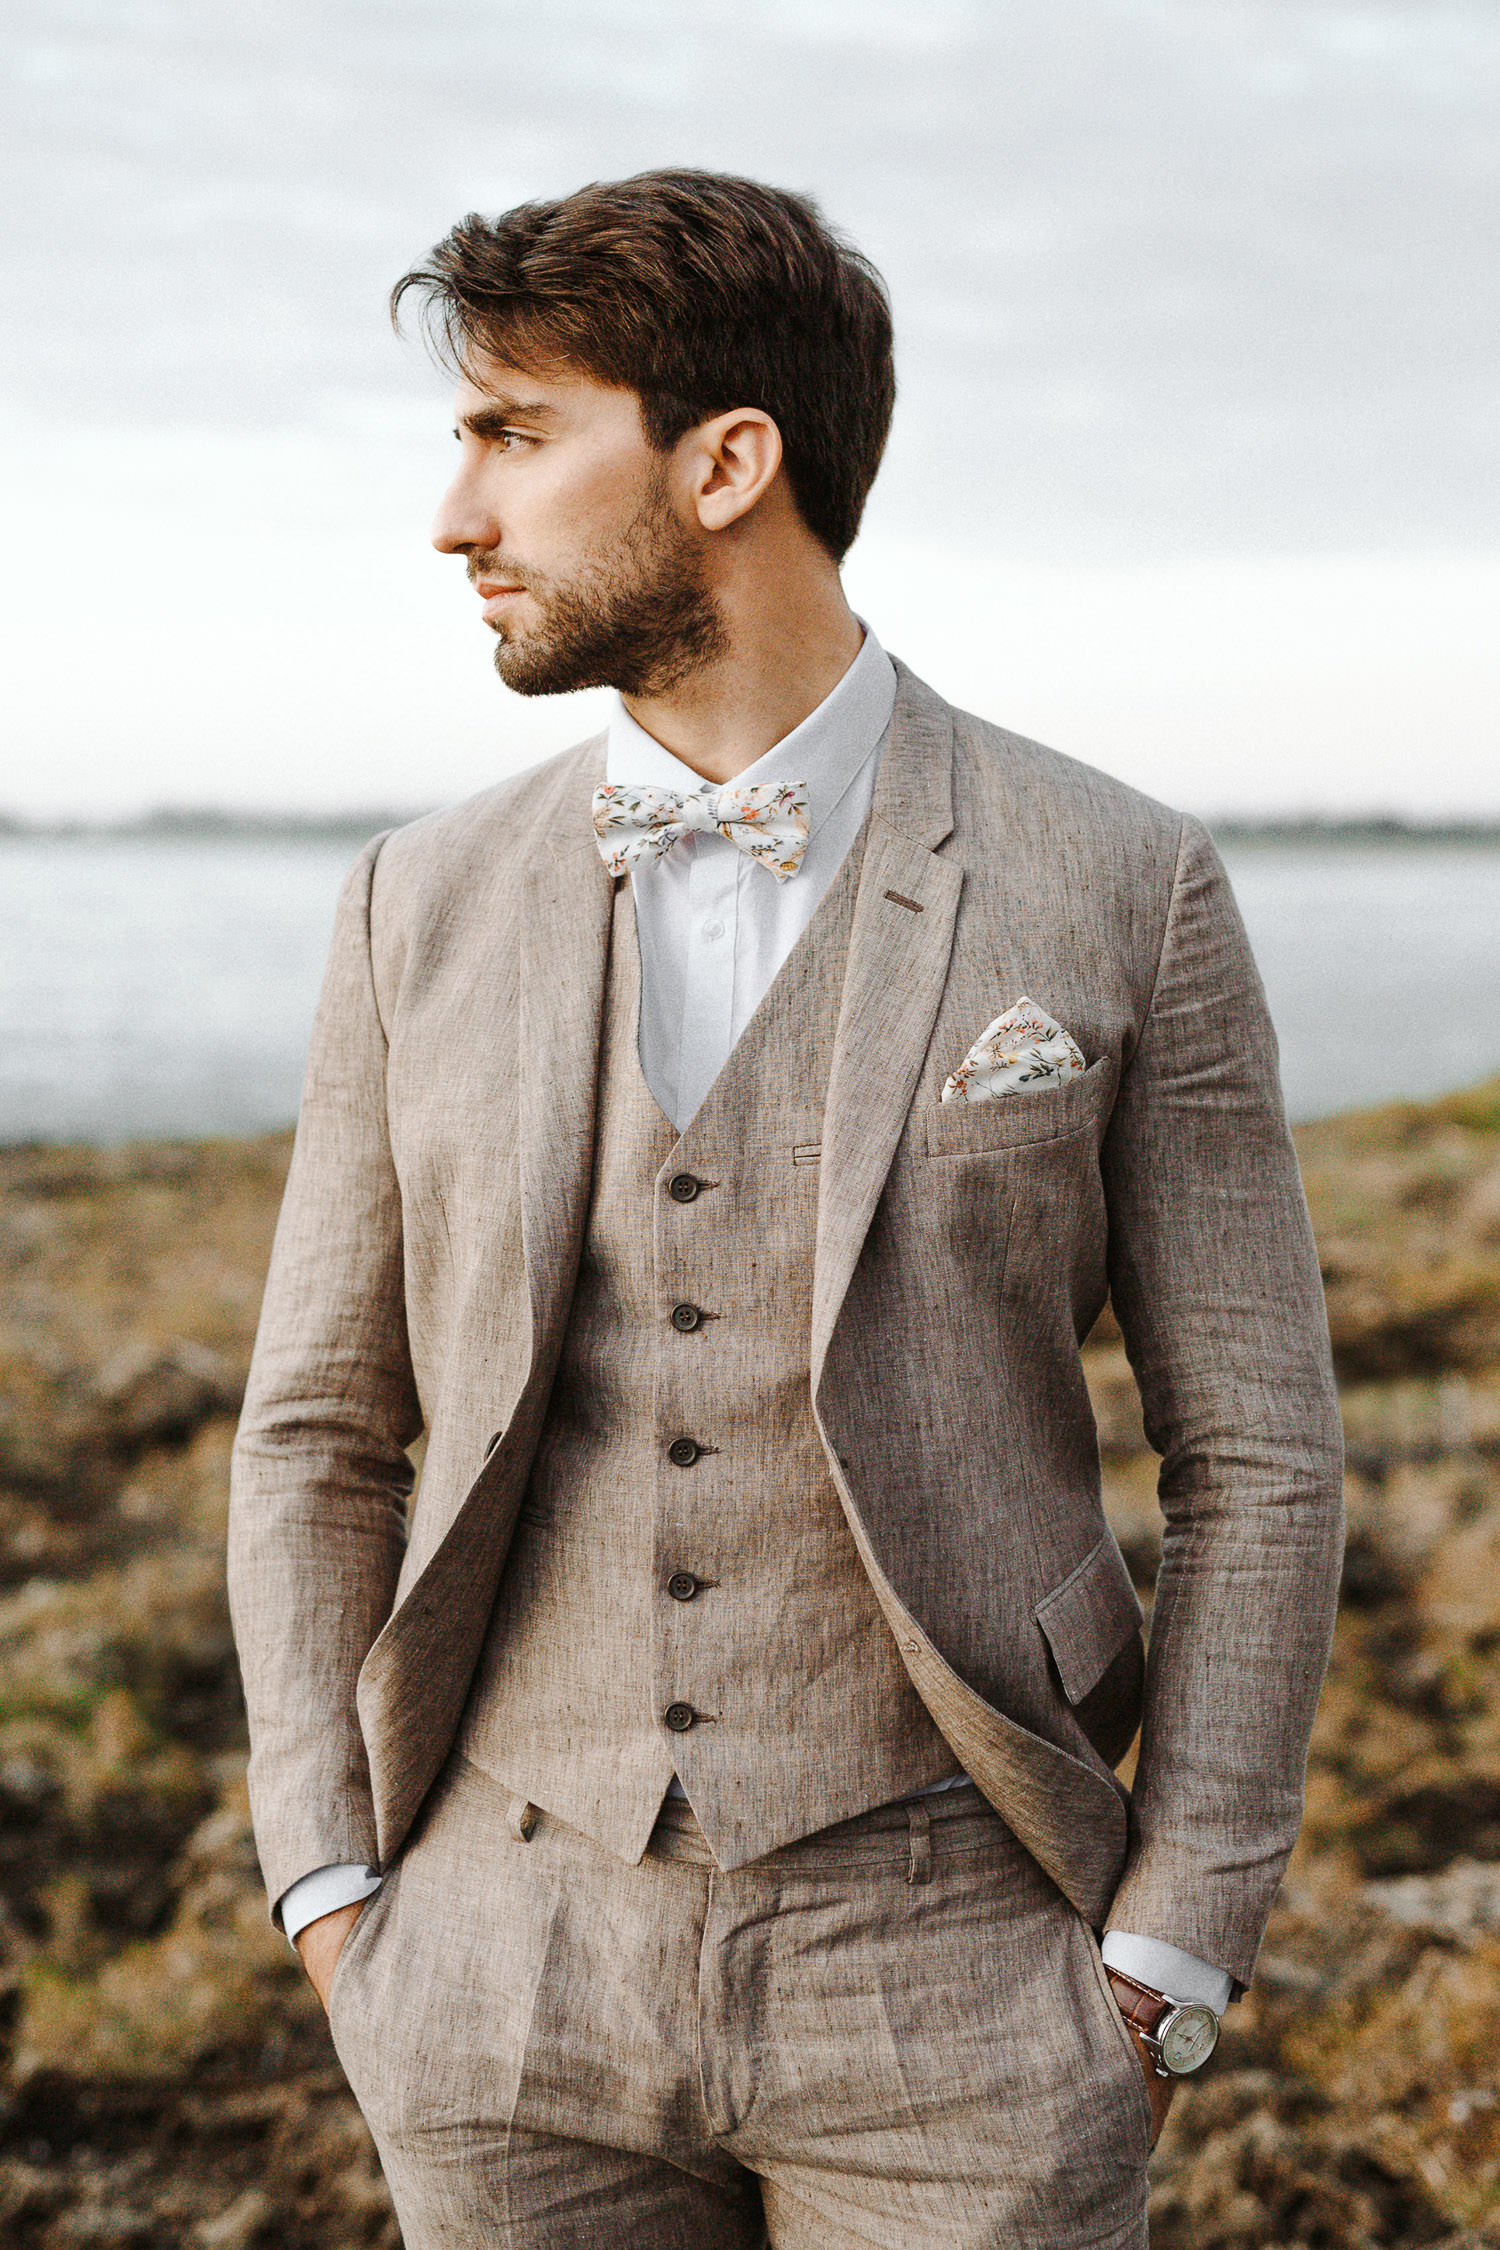 Stylish groom wearing a tailor made Linneo Archivable Clothing suit - Photo: Camilla Anchisi